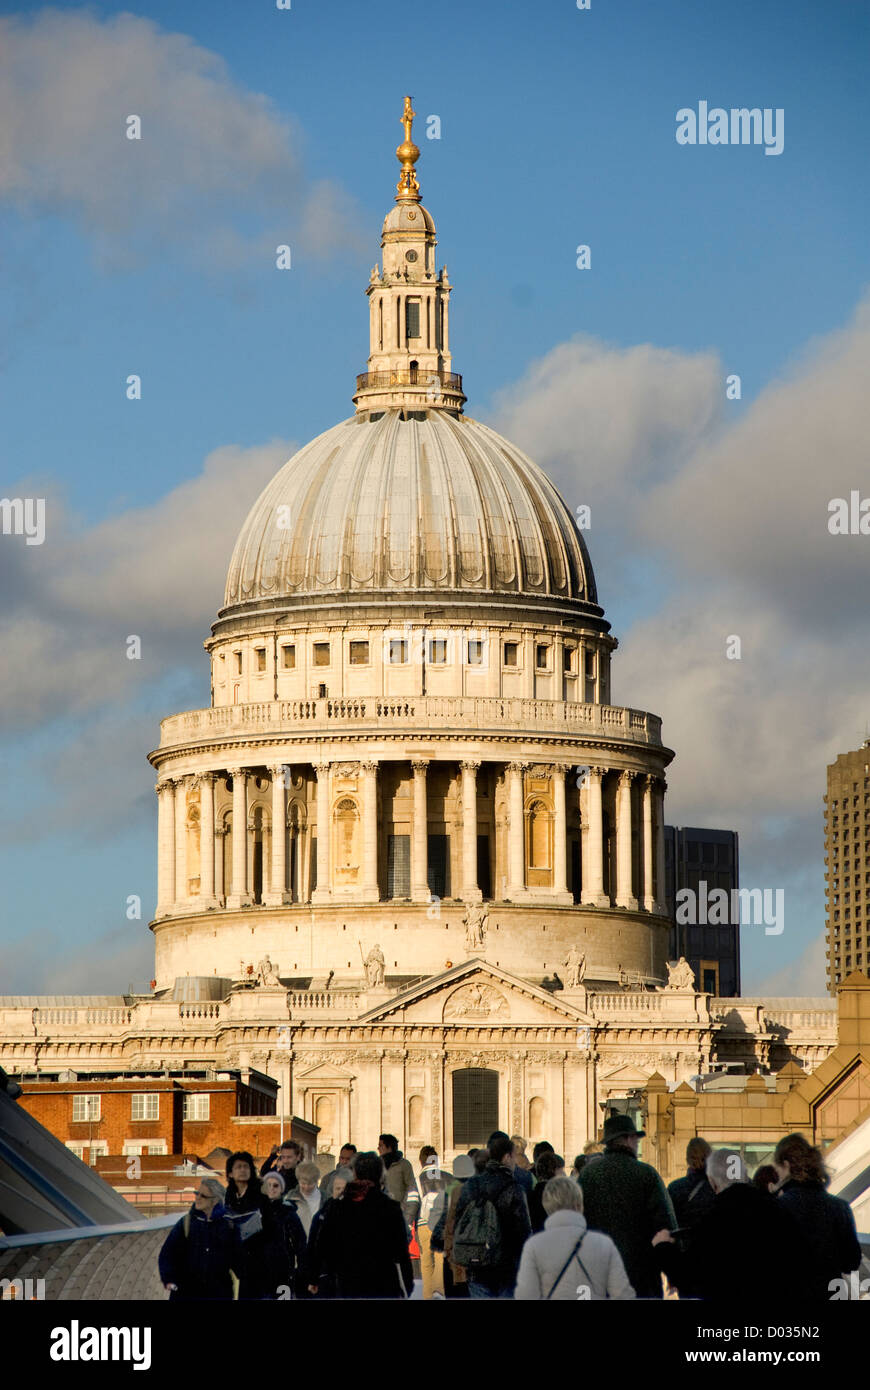 Pedestrians on Millennium Bridge, St Paul's Cathedral, London, England, United Kingdom, Europe - Stock Image